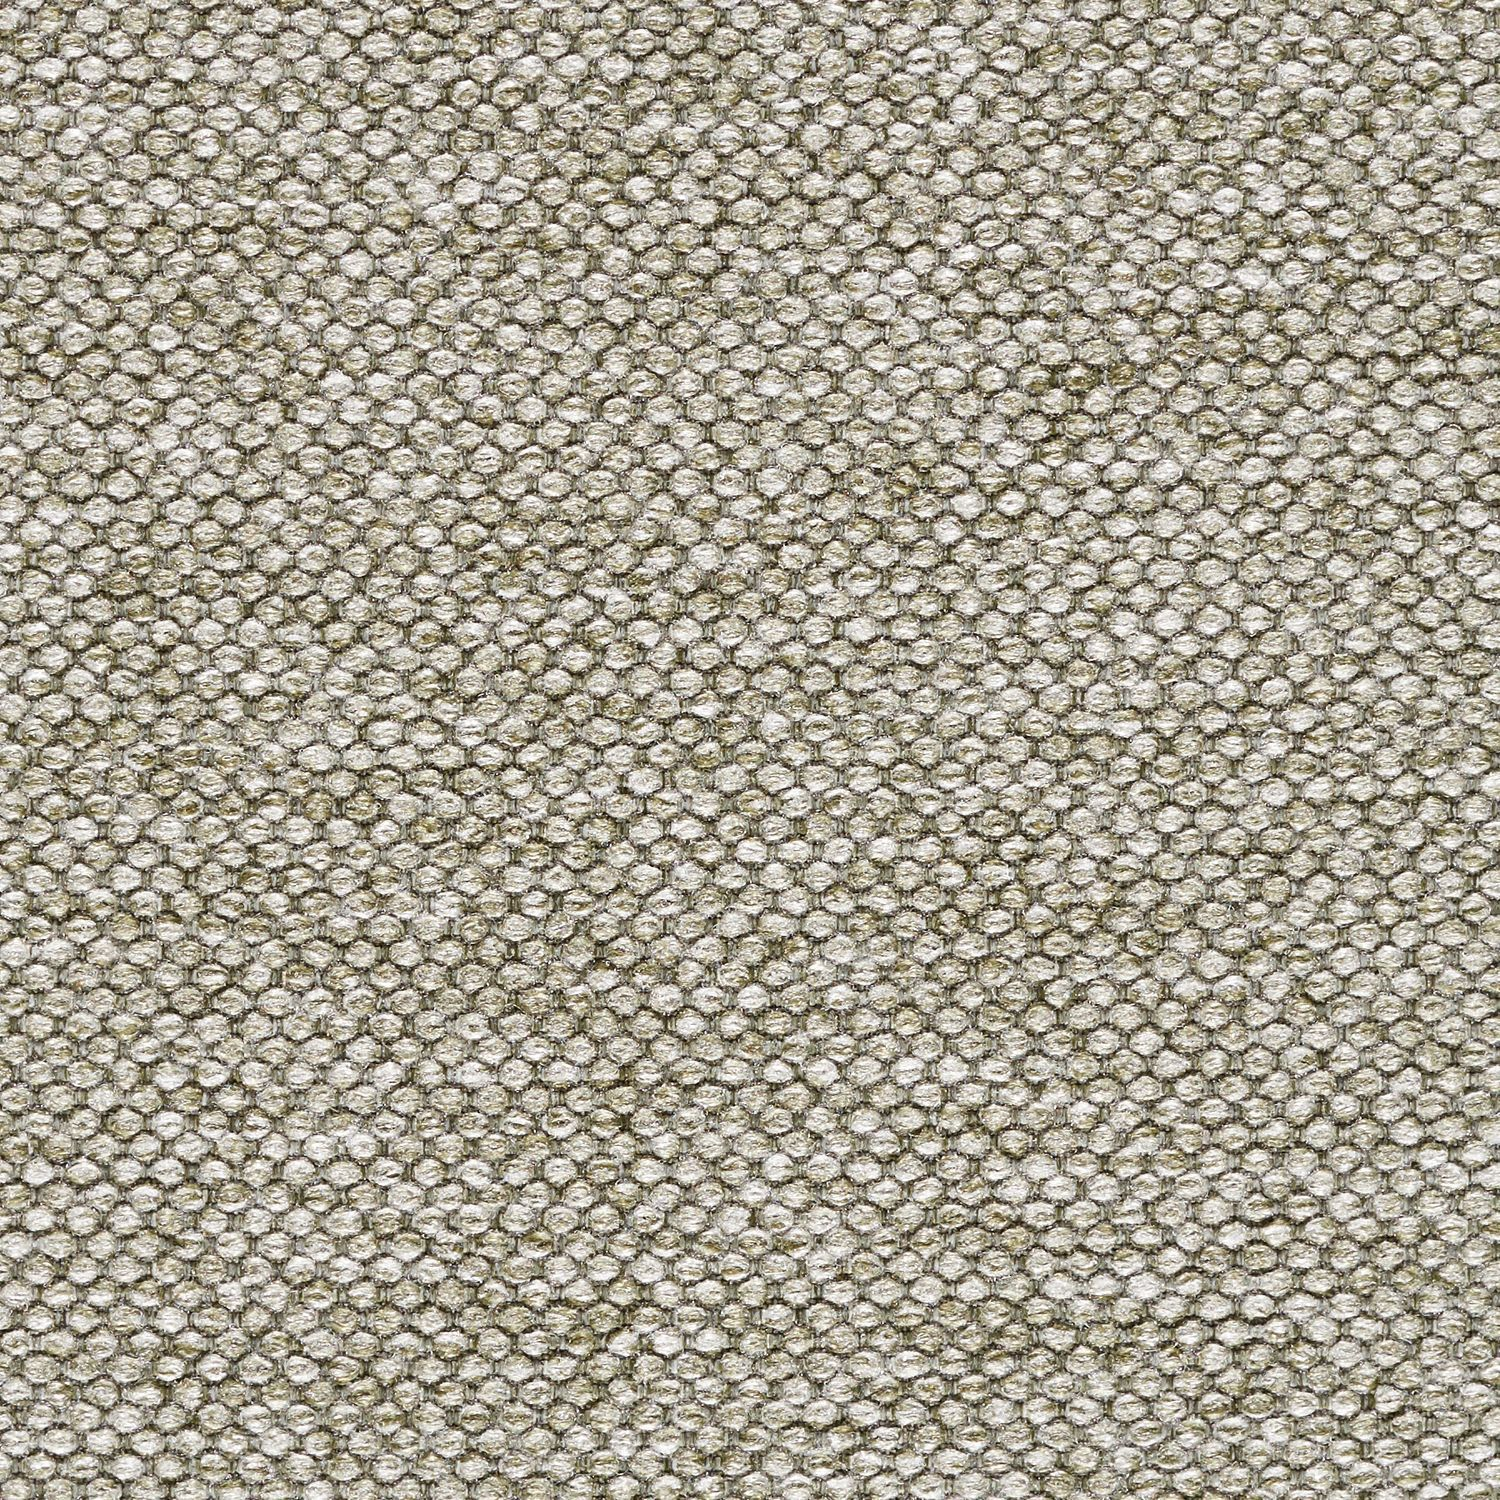 Low-D319_Sagebrush-Tweed